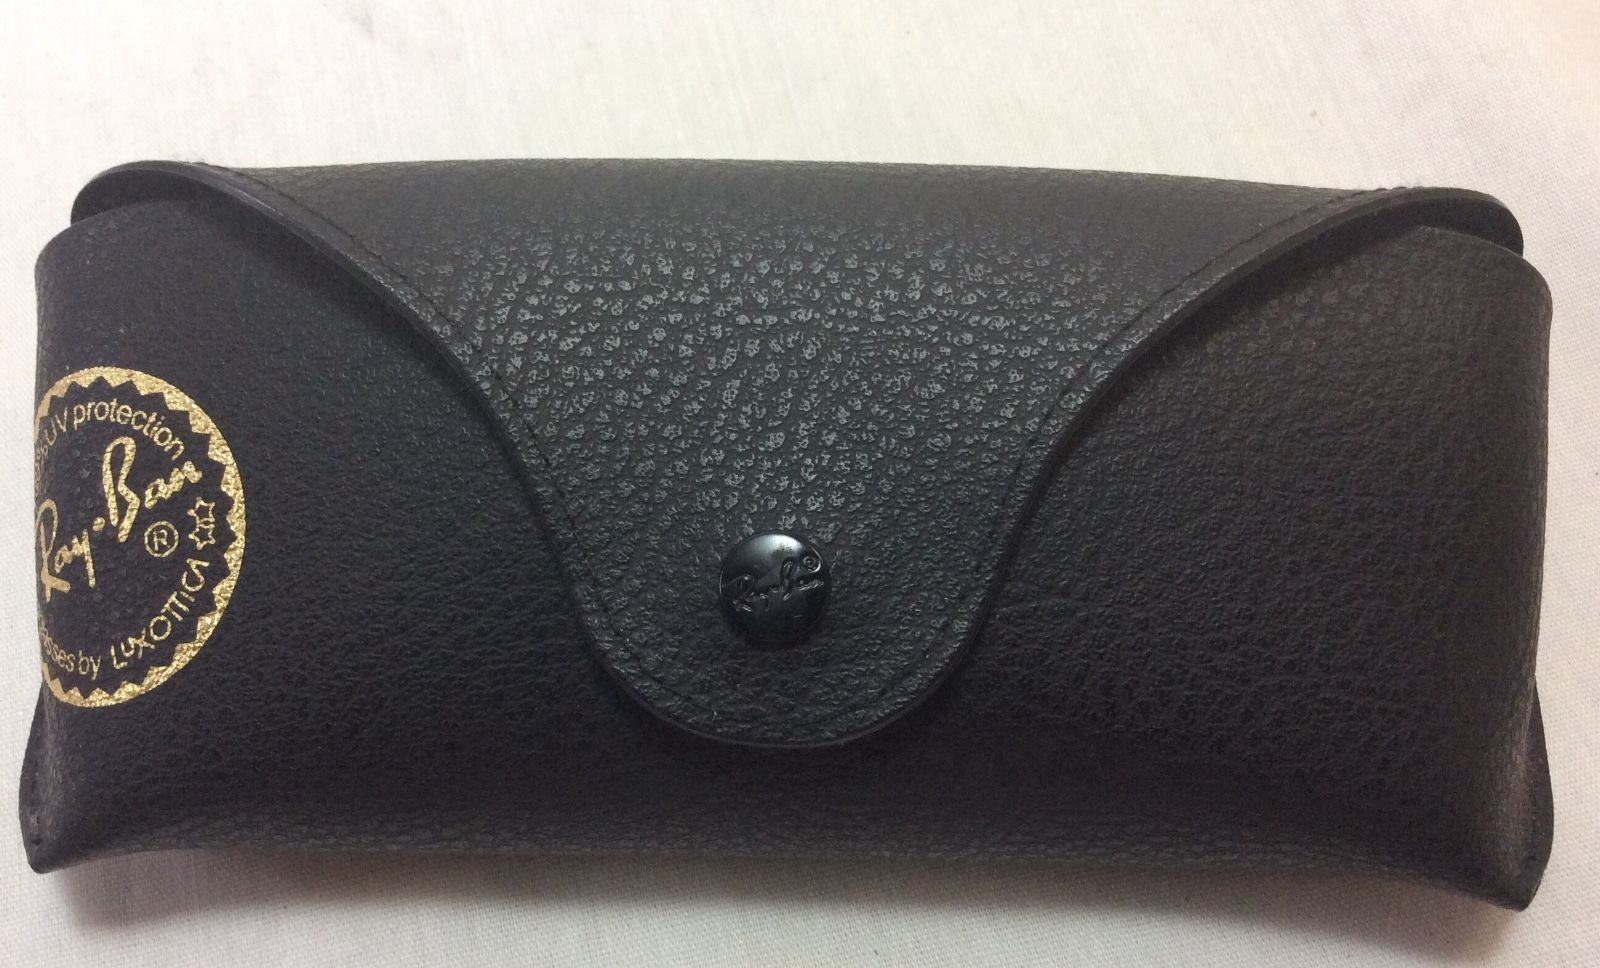 e7568cac17f Ray Ban Aviator Lens Case Black with Ray Ban and 50 similar items